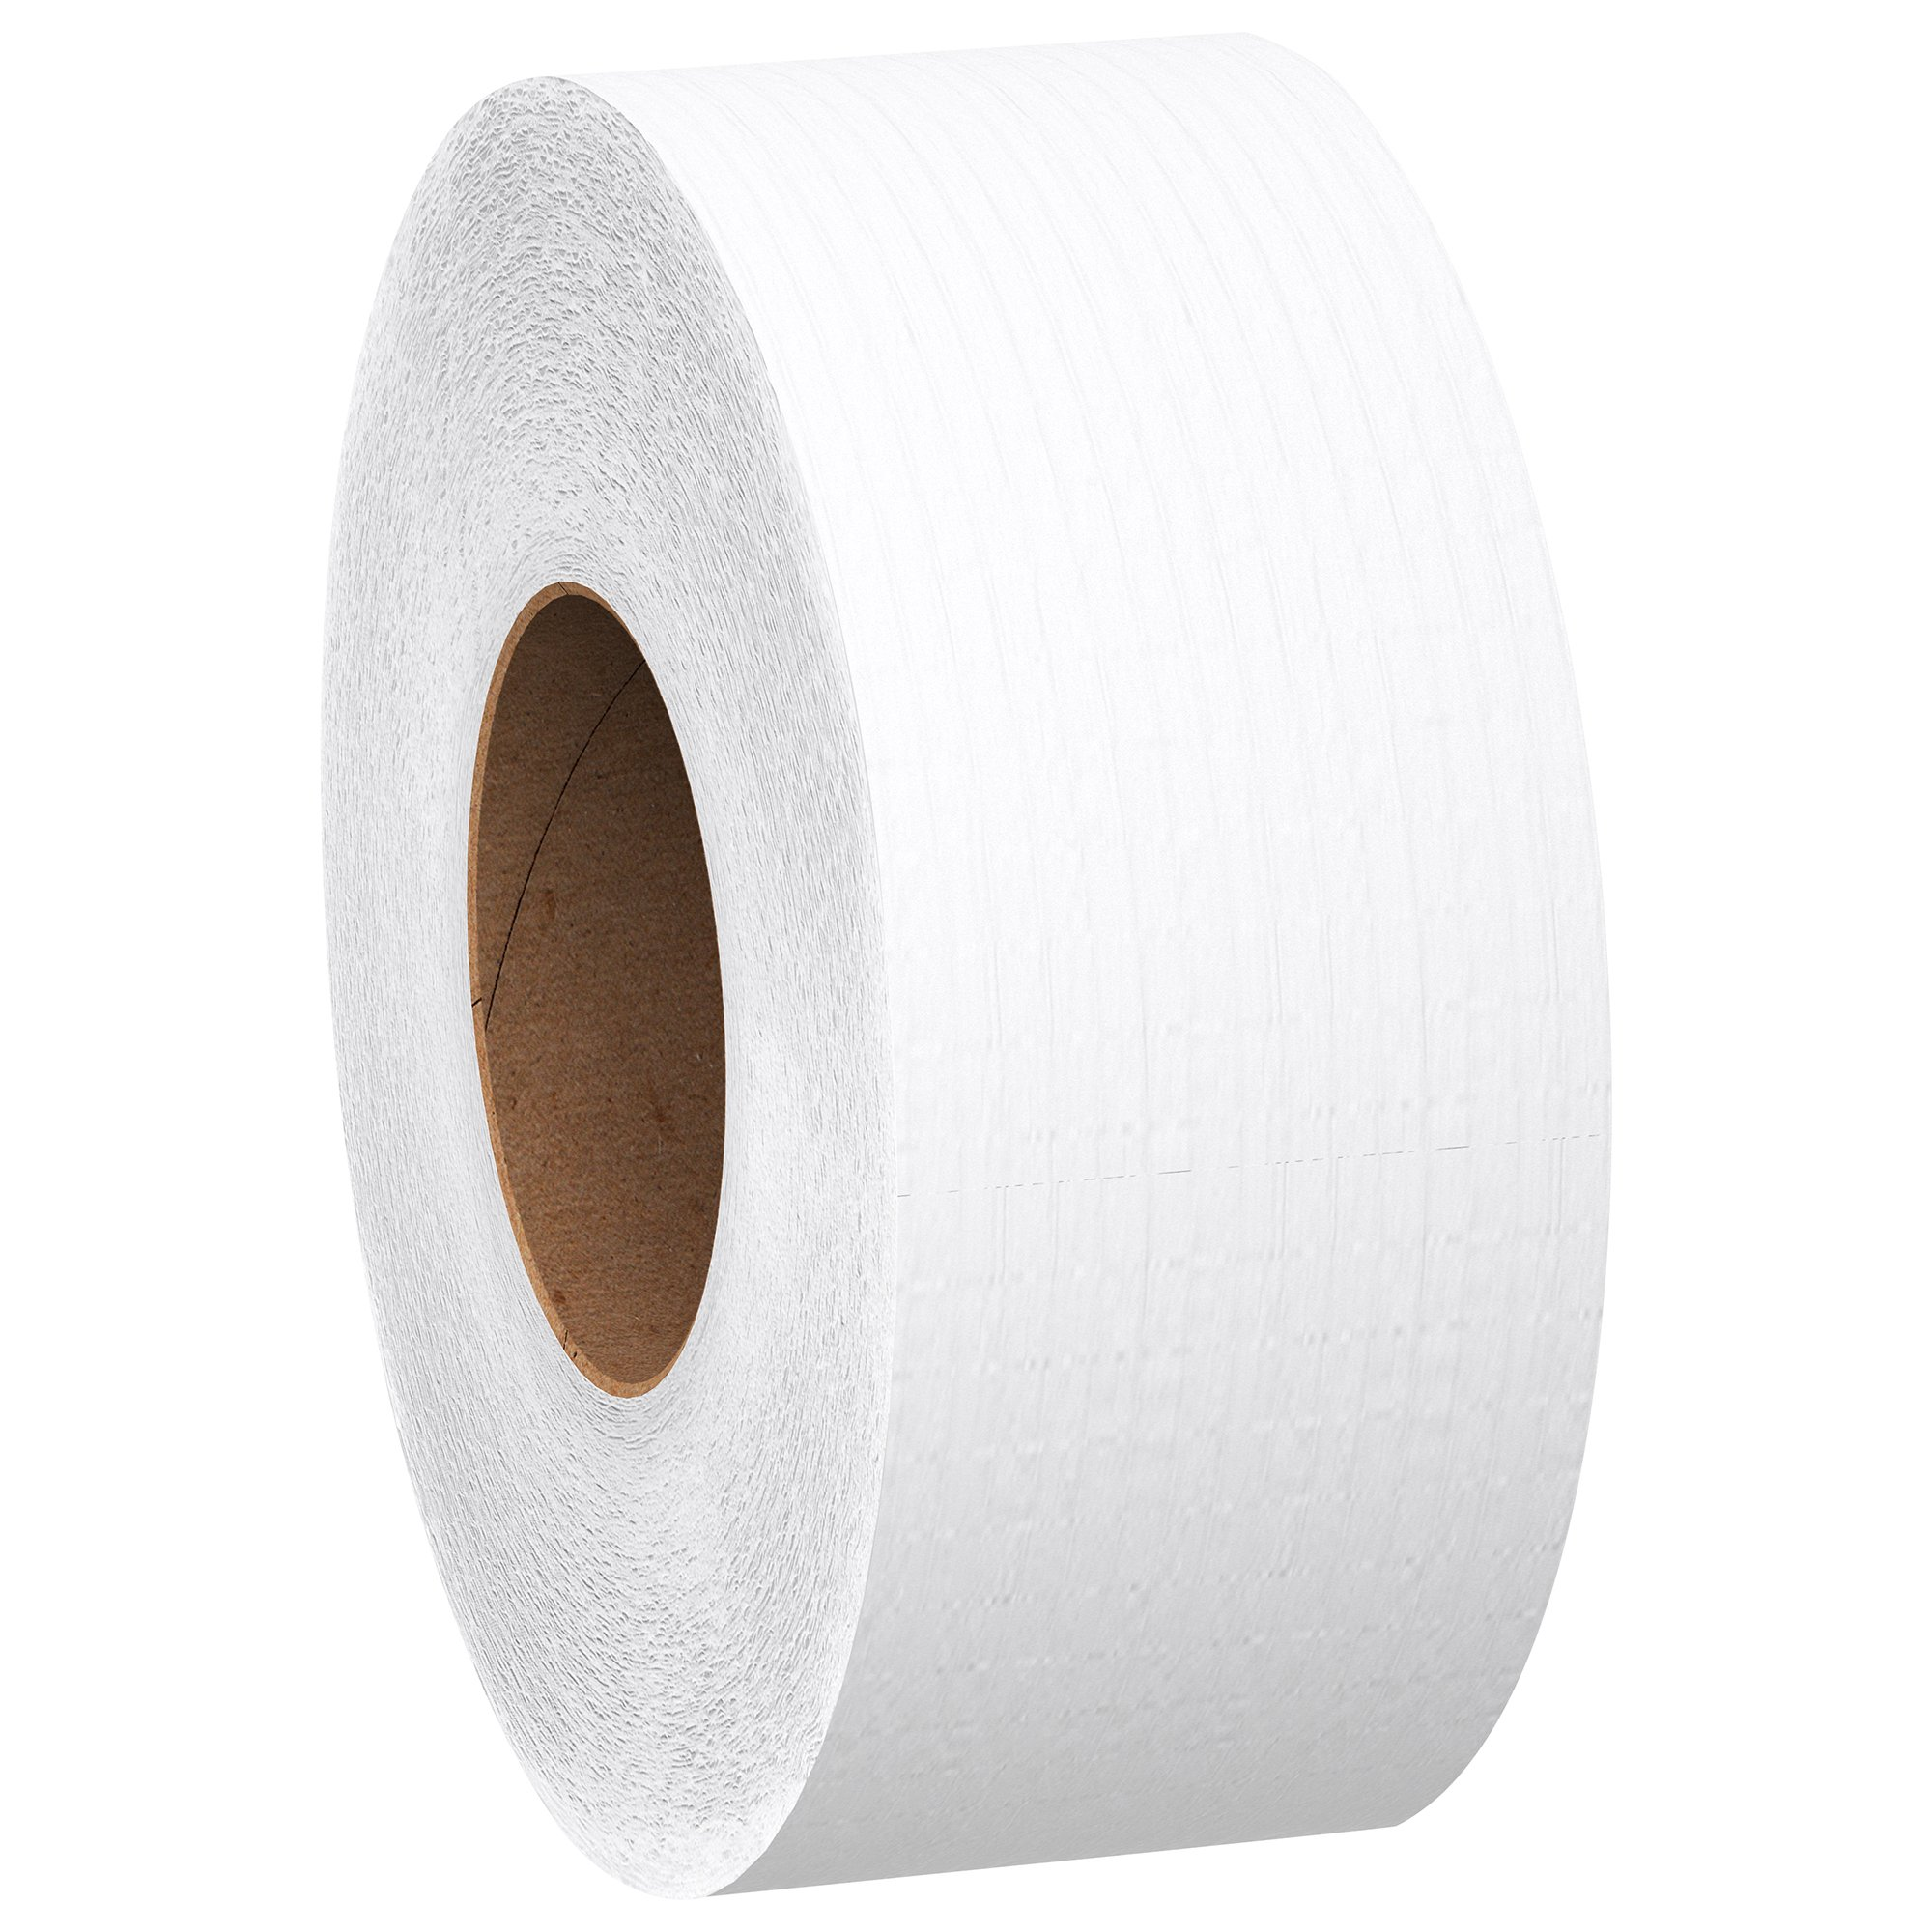 Scott Essential Jumbo Roll JR. Commercial Toilet Paper (03148), 2-PLY, White, 4 Rolls/Convenience Case, 1000' / Roll